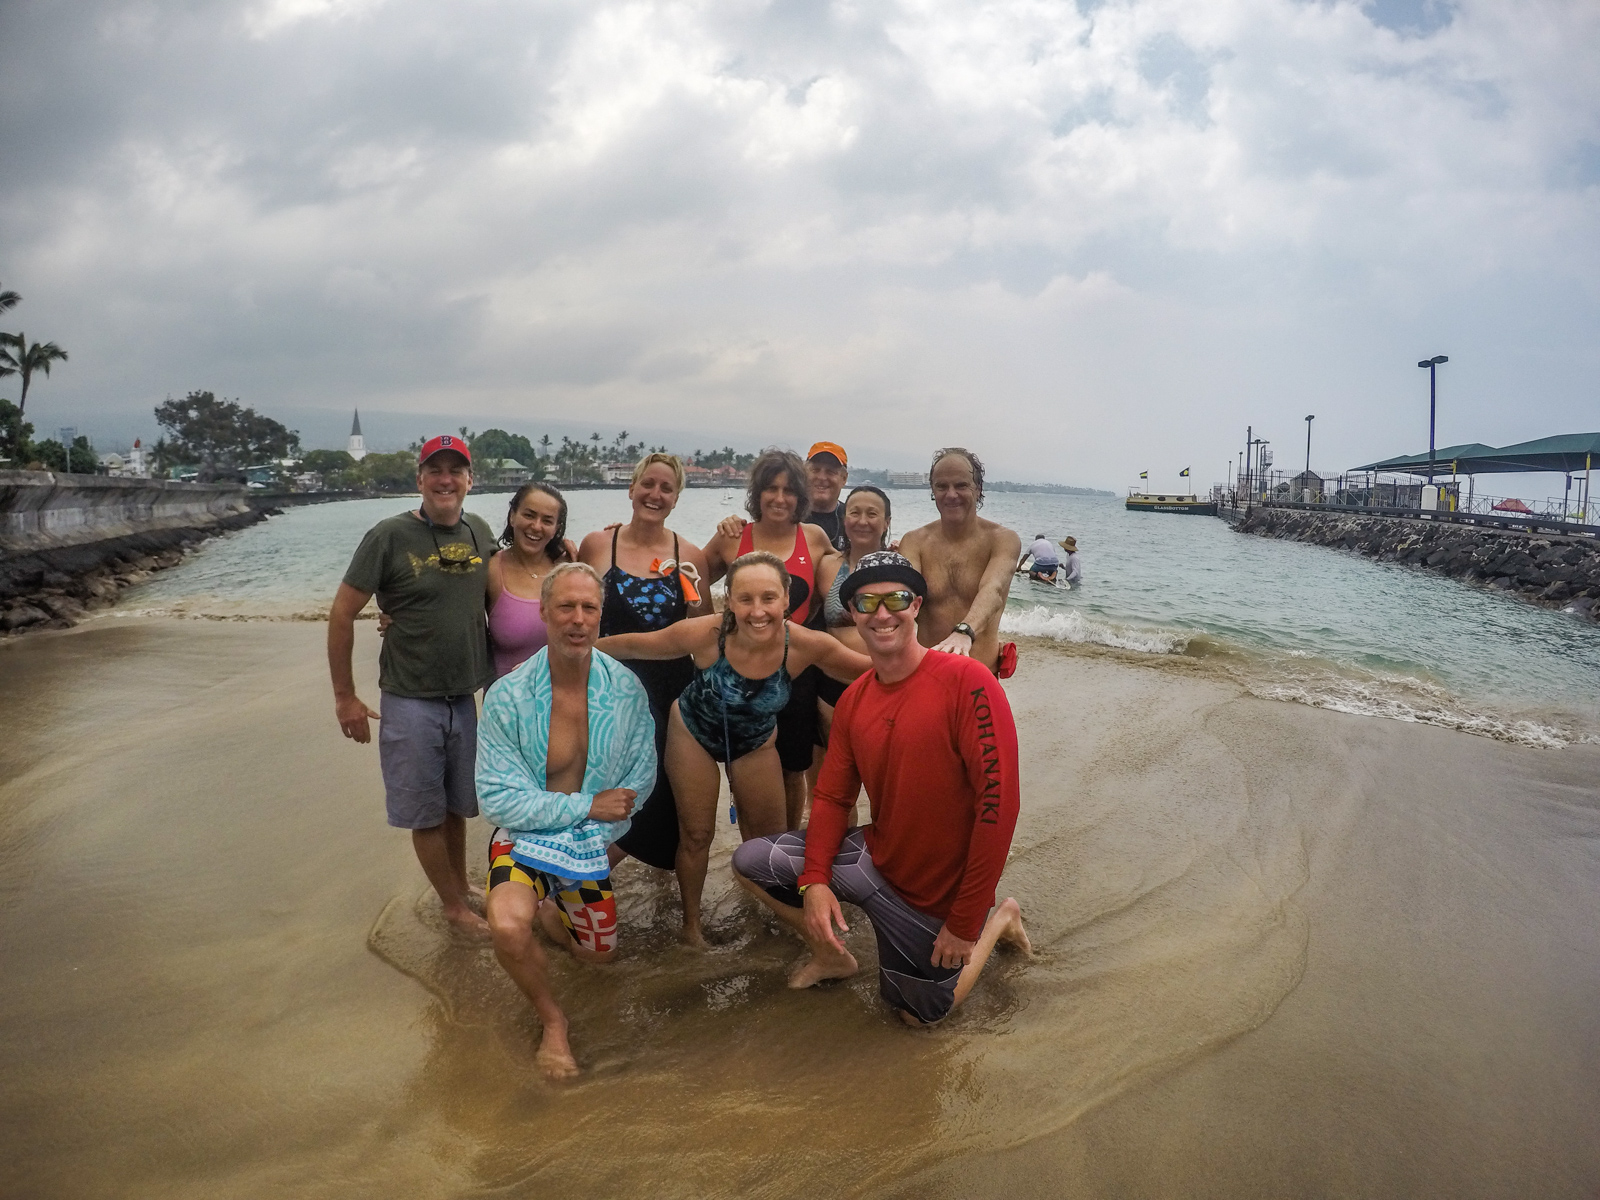 Team SwimVacation completes the swim leg of the IronMan! Next up, showers on the pier and shave ice.